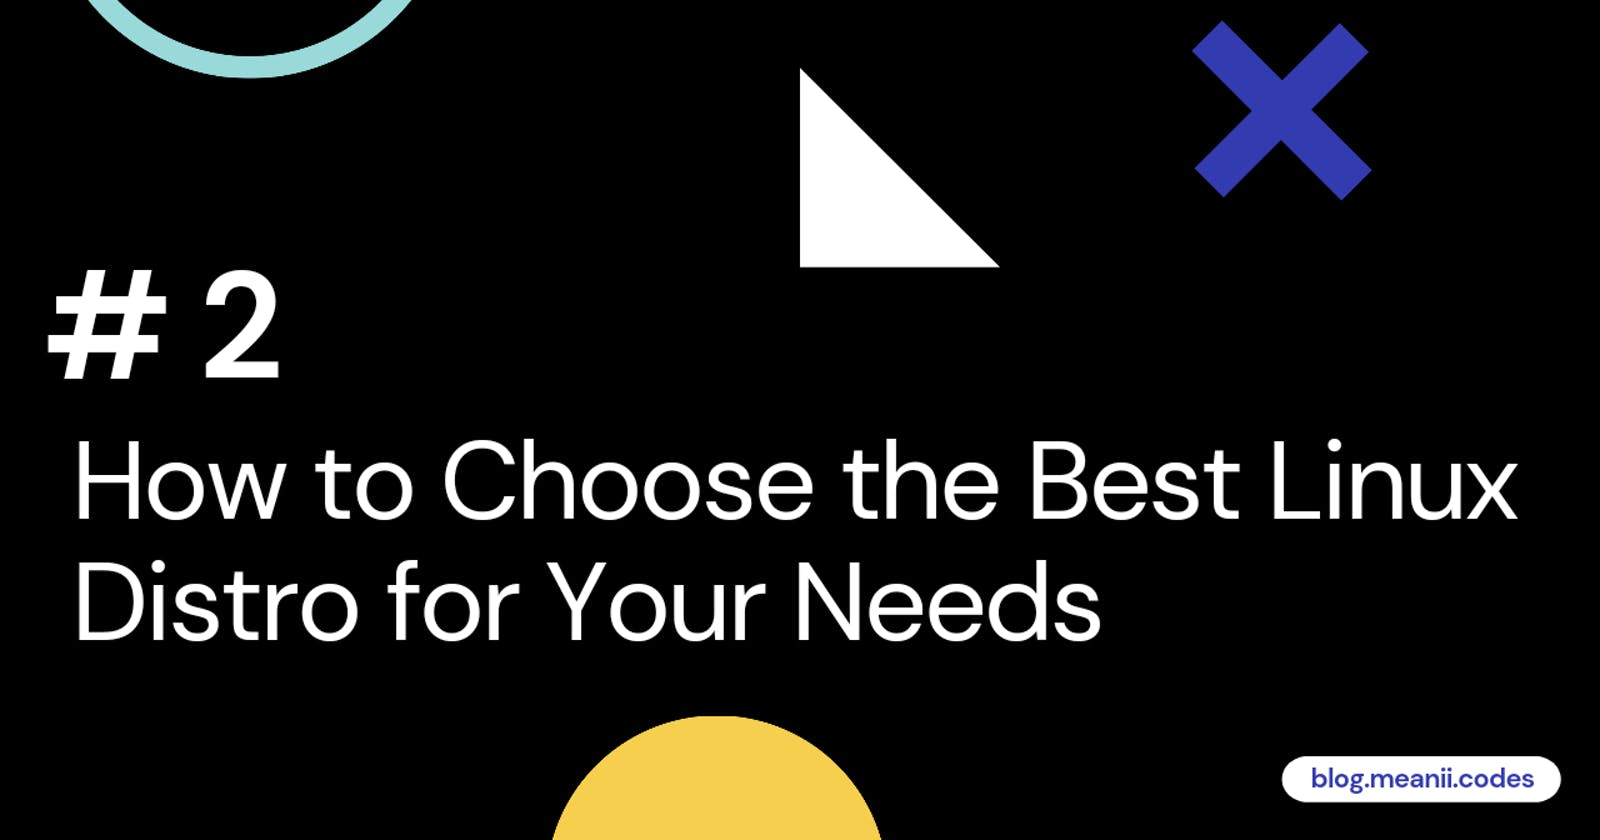 #2 How to Choose the Best Linux Distro for Your Needs